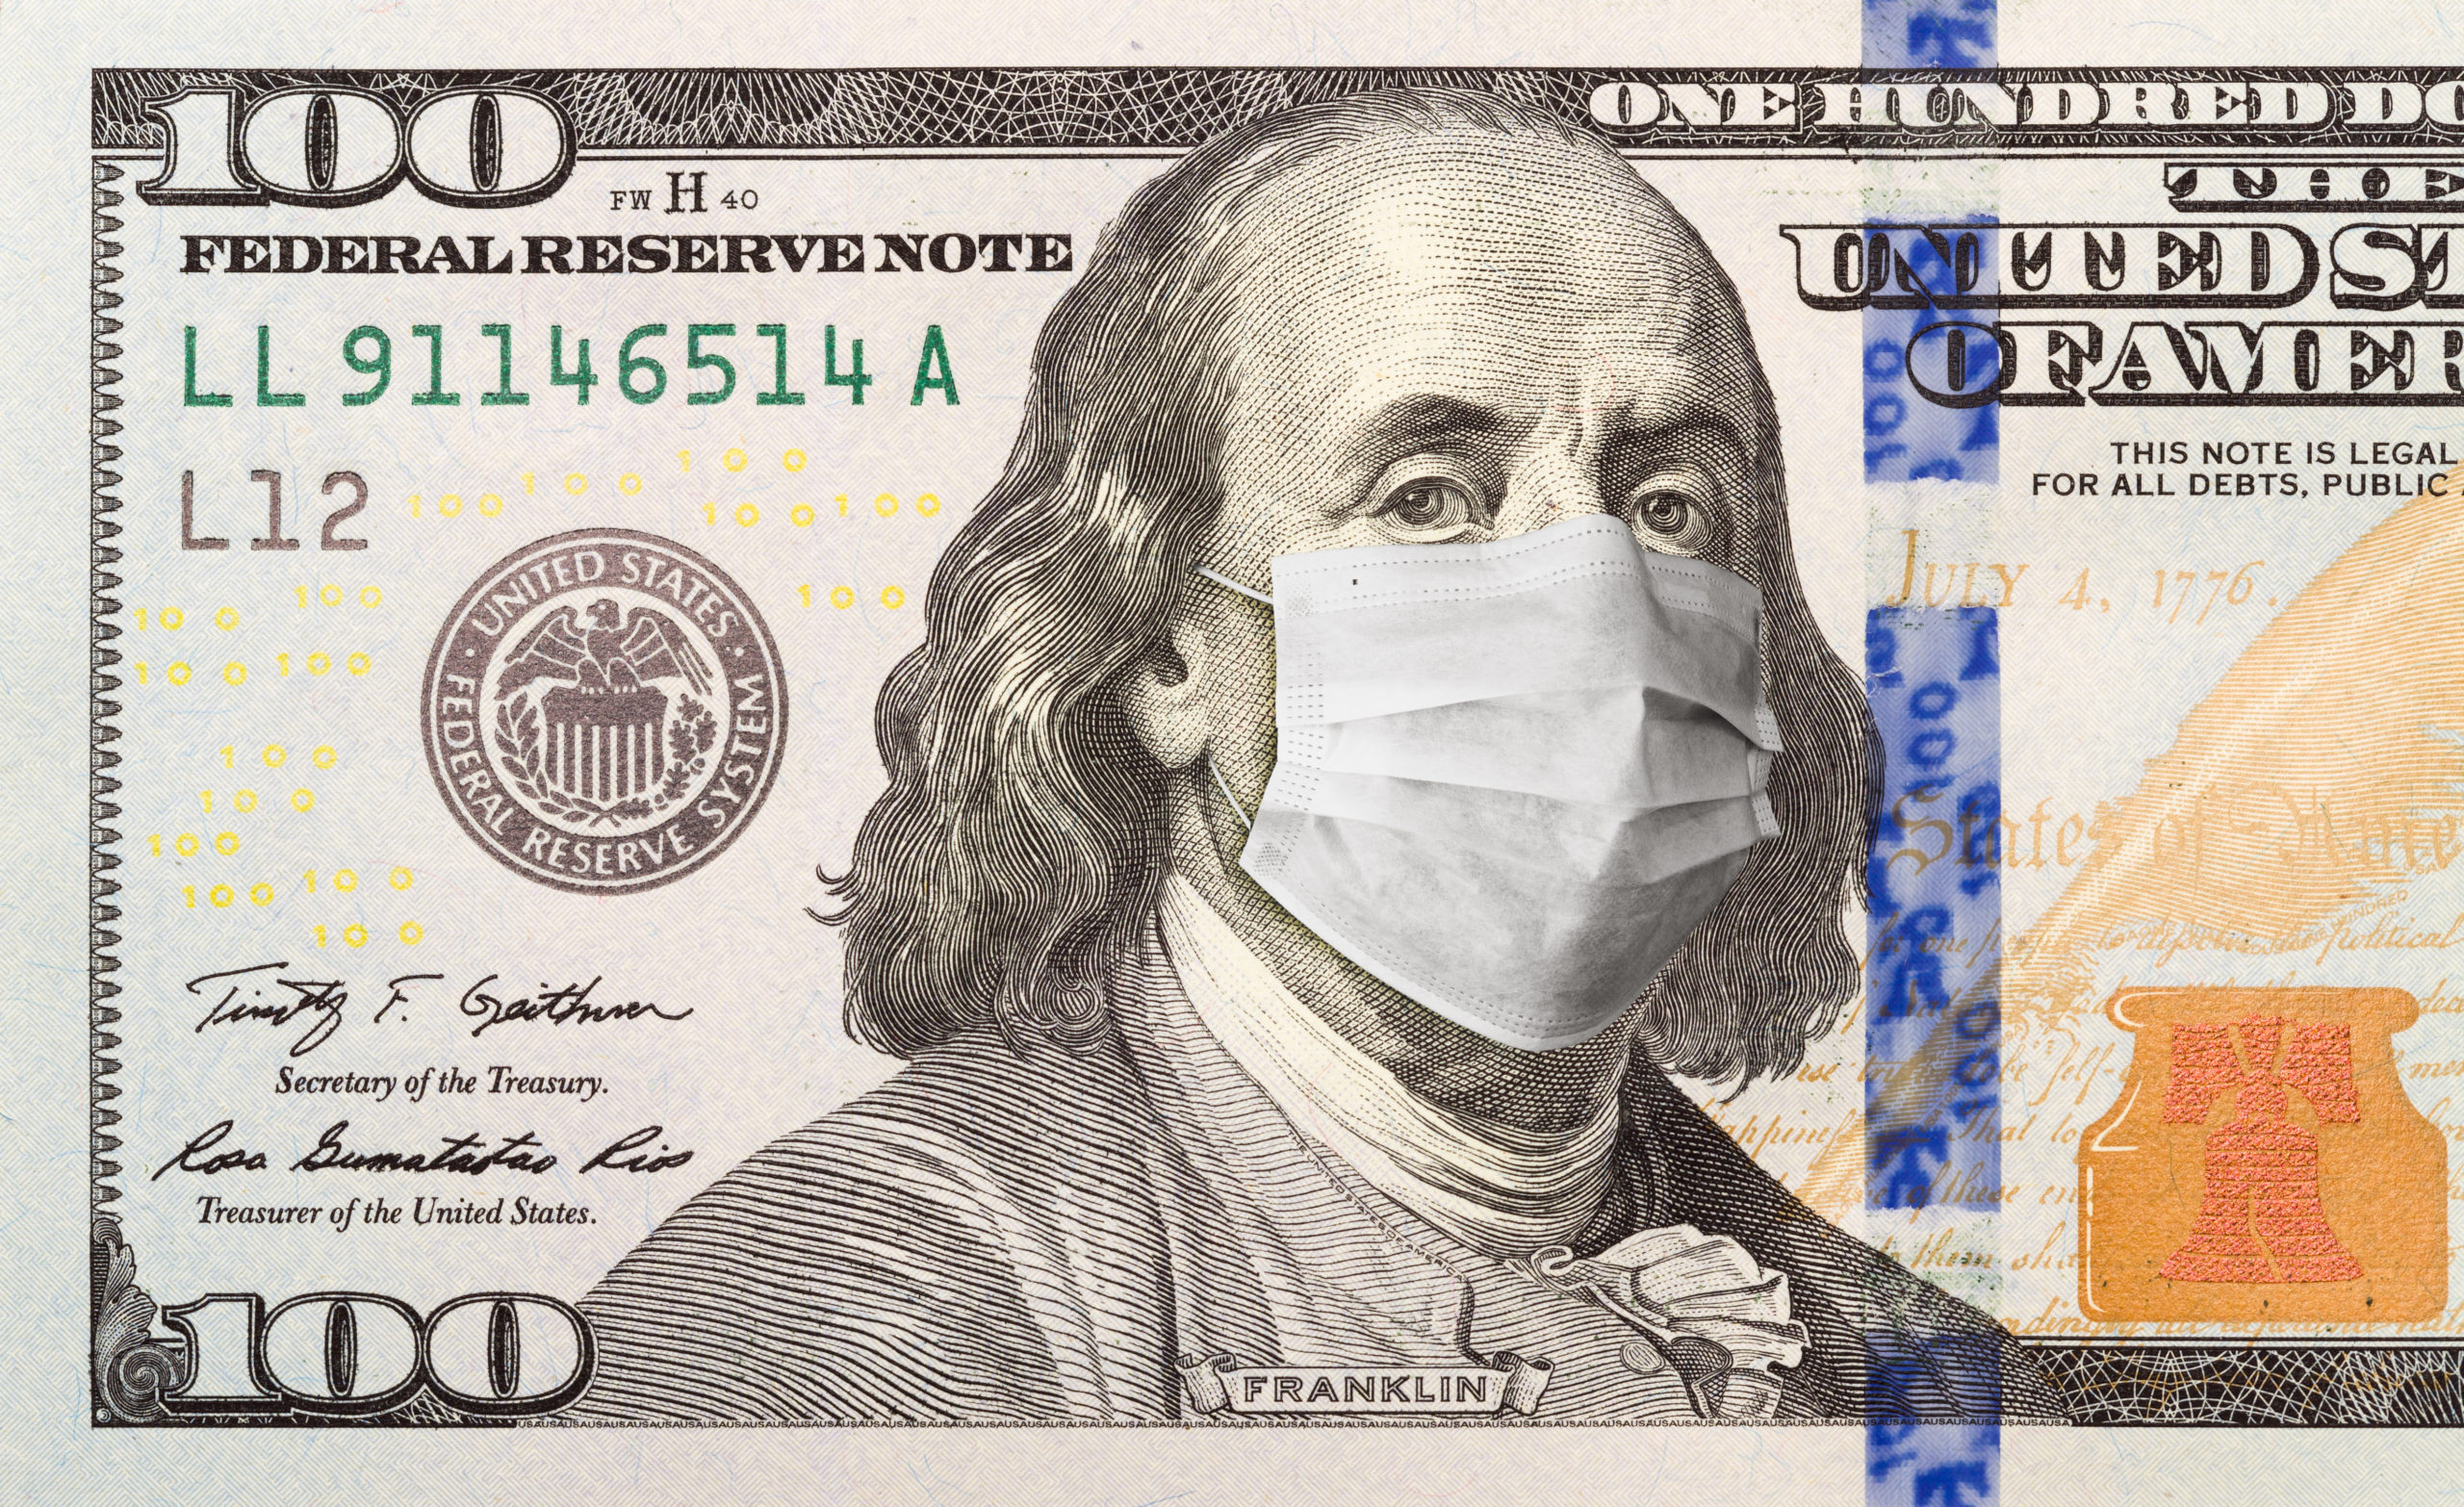 Hundred Dollar Bill With a facemask